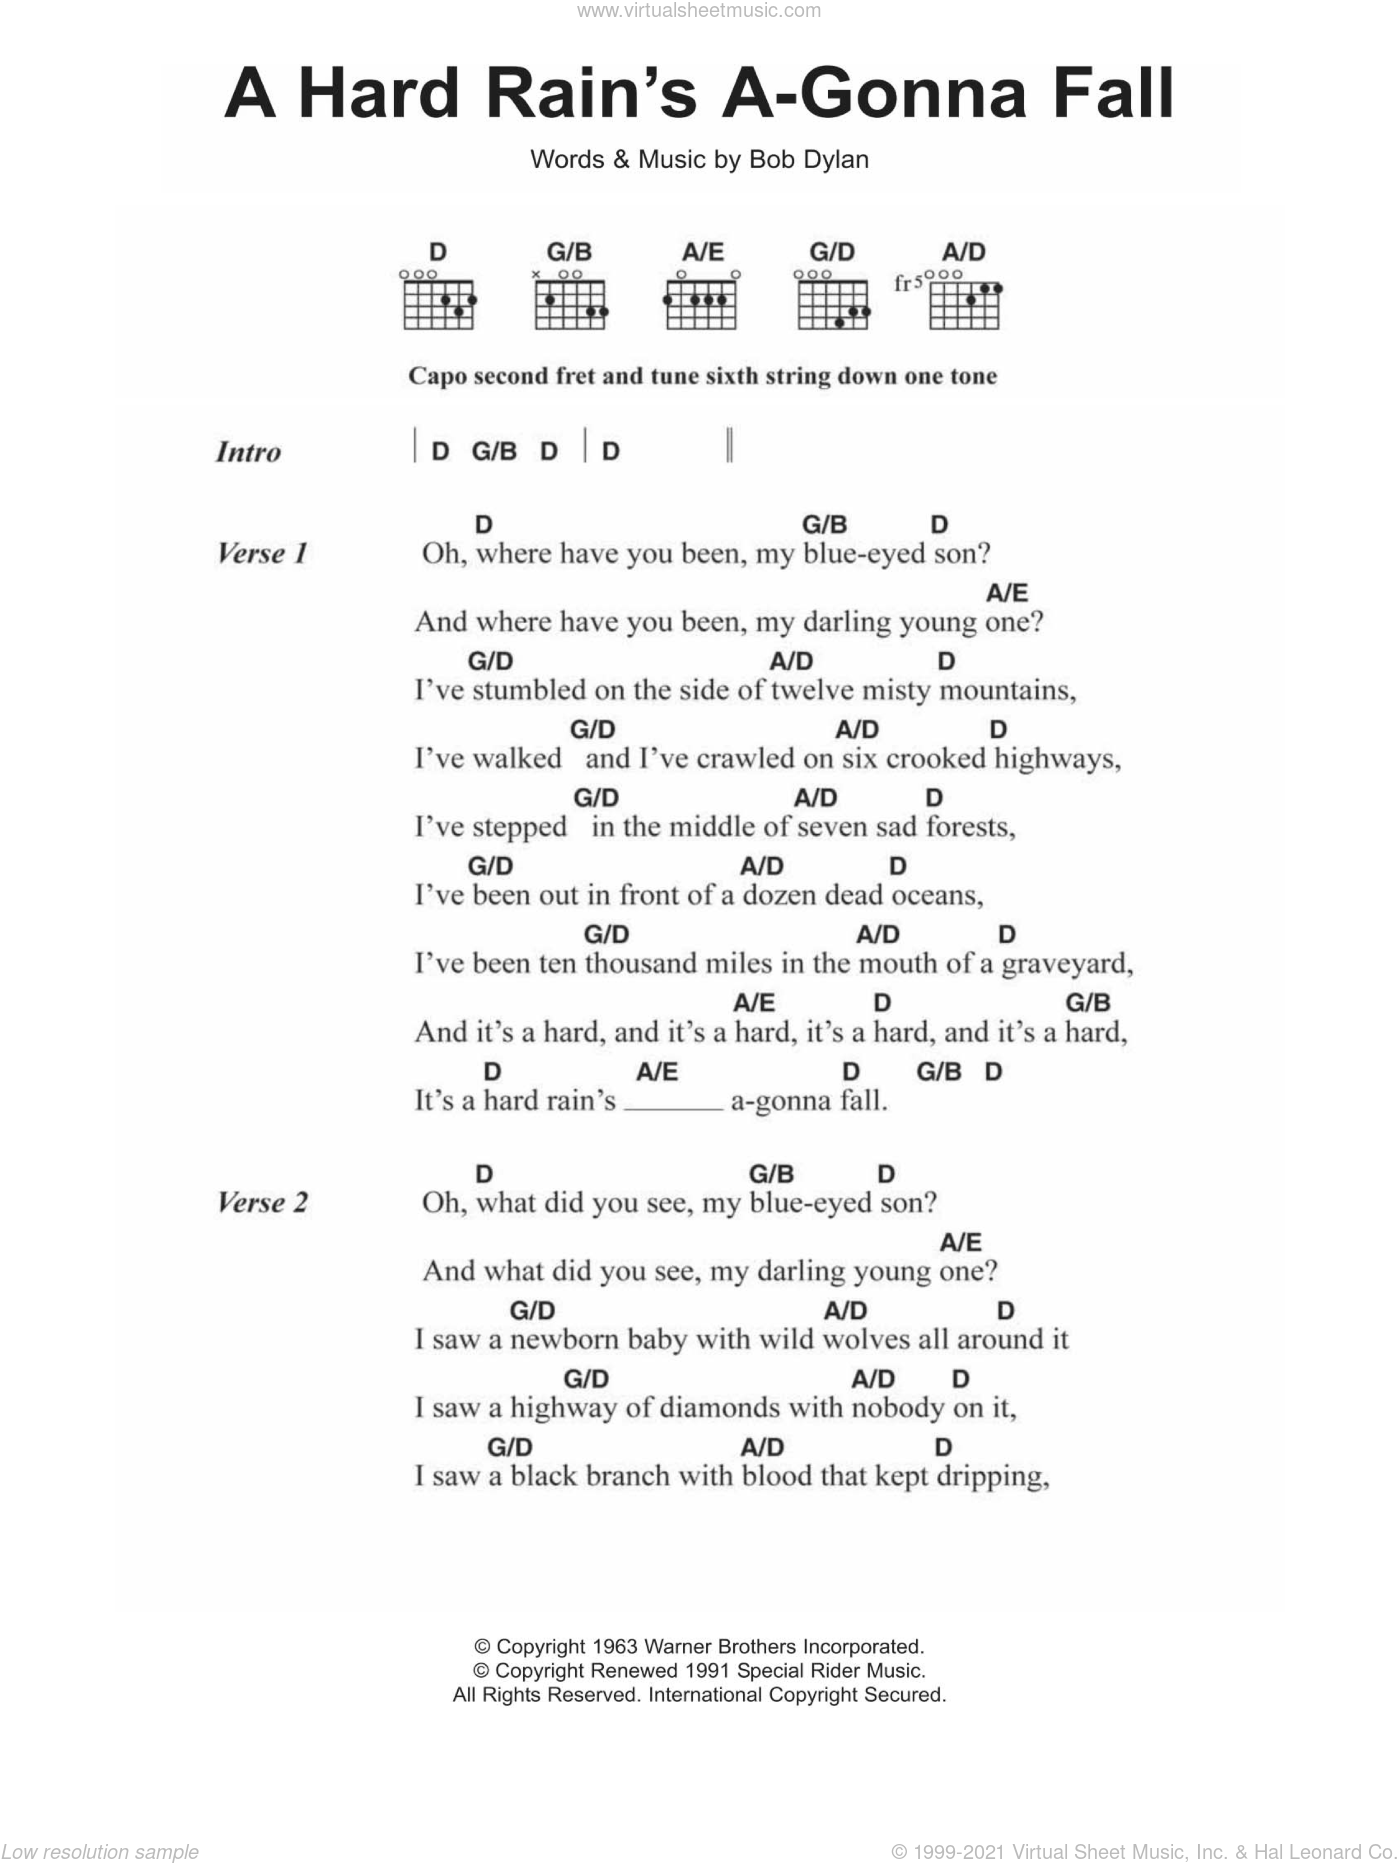 A Hard Rain's A-Gonna Fall sheet music for guitar (chords) by Bob Dylan